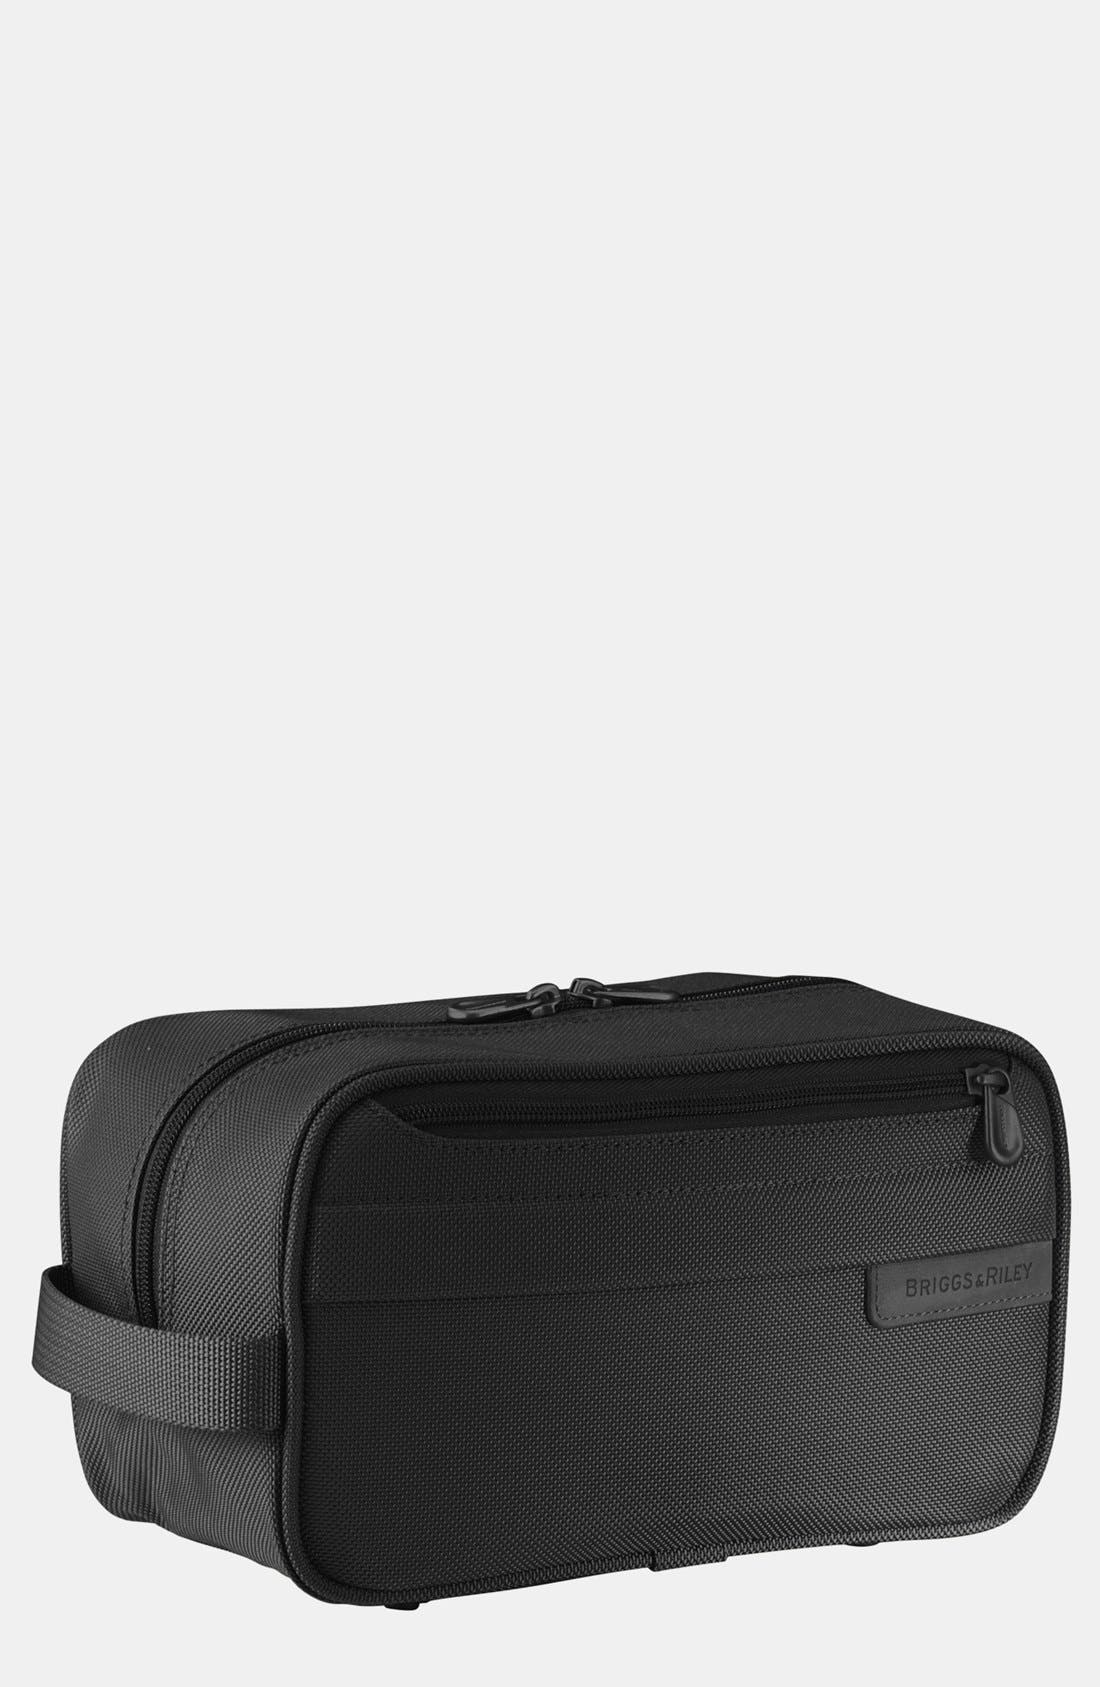 BRIGGS & RILEY,                             'Baseline' Travel Kit,                             Main thumbnail 1, color,                             BLACK